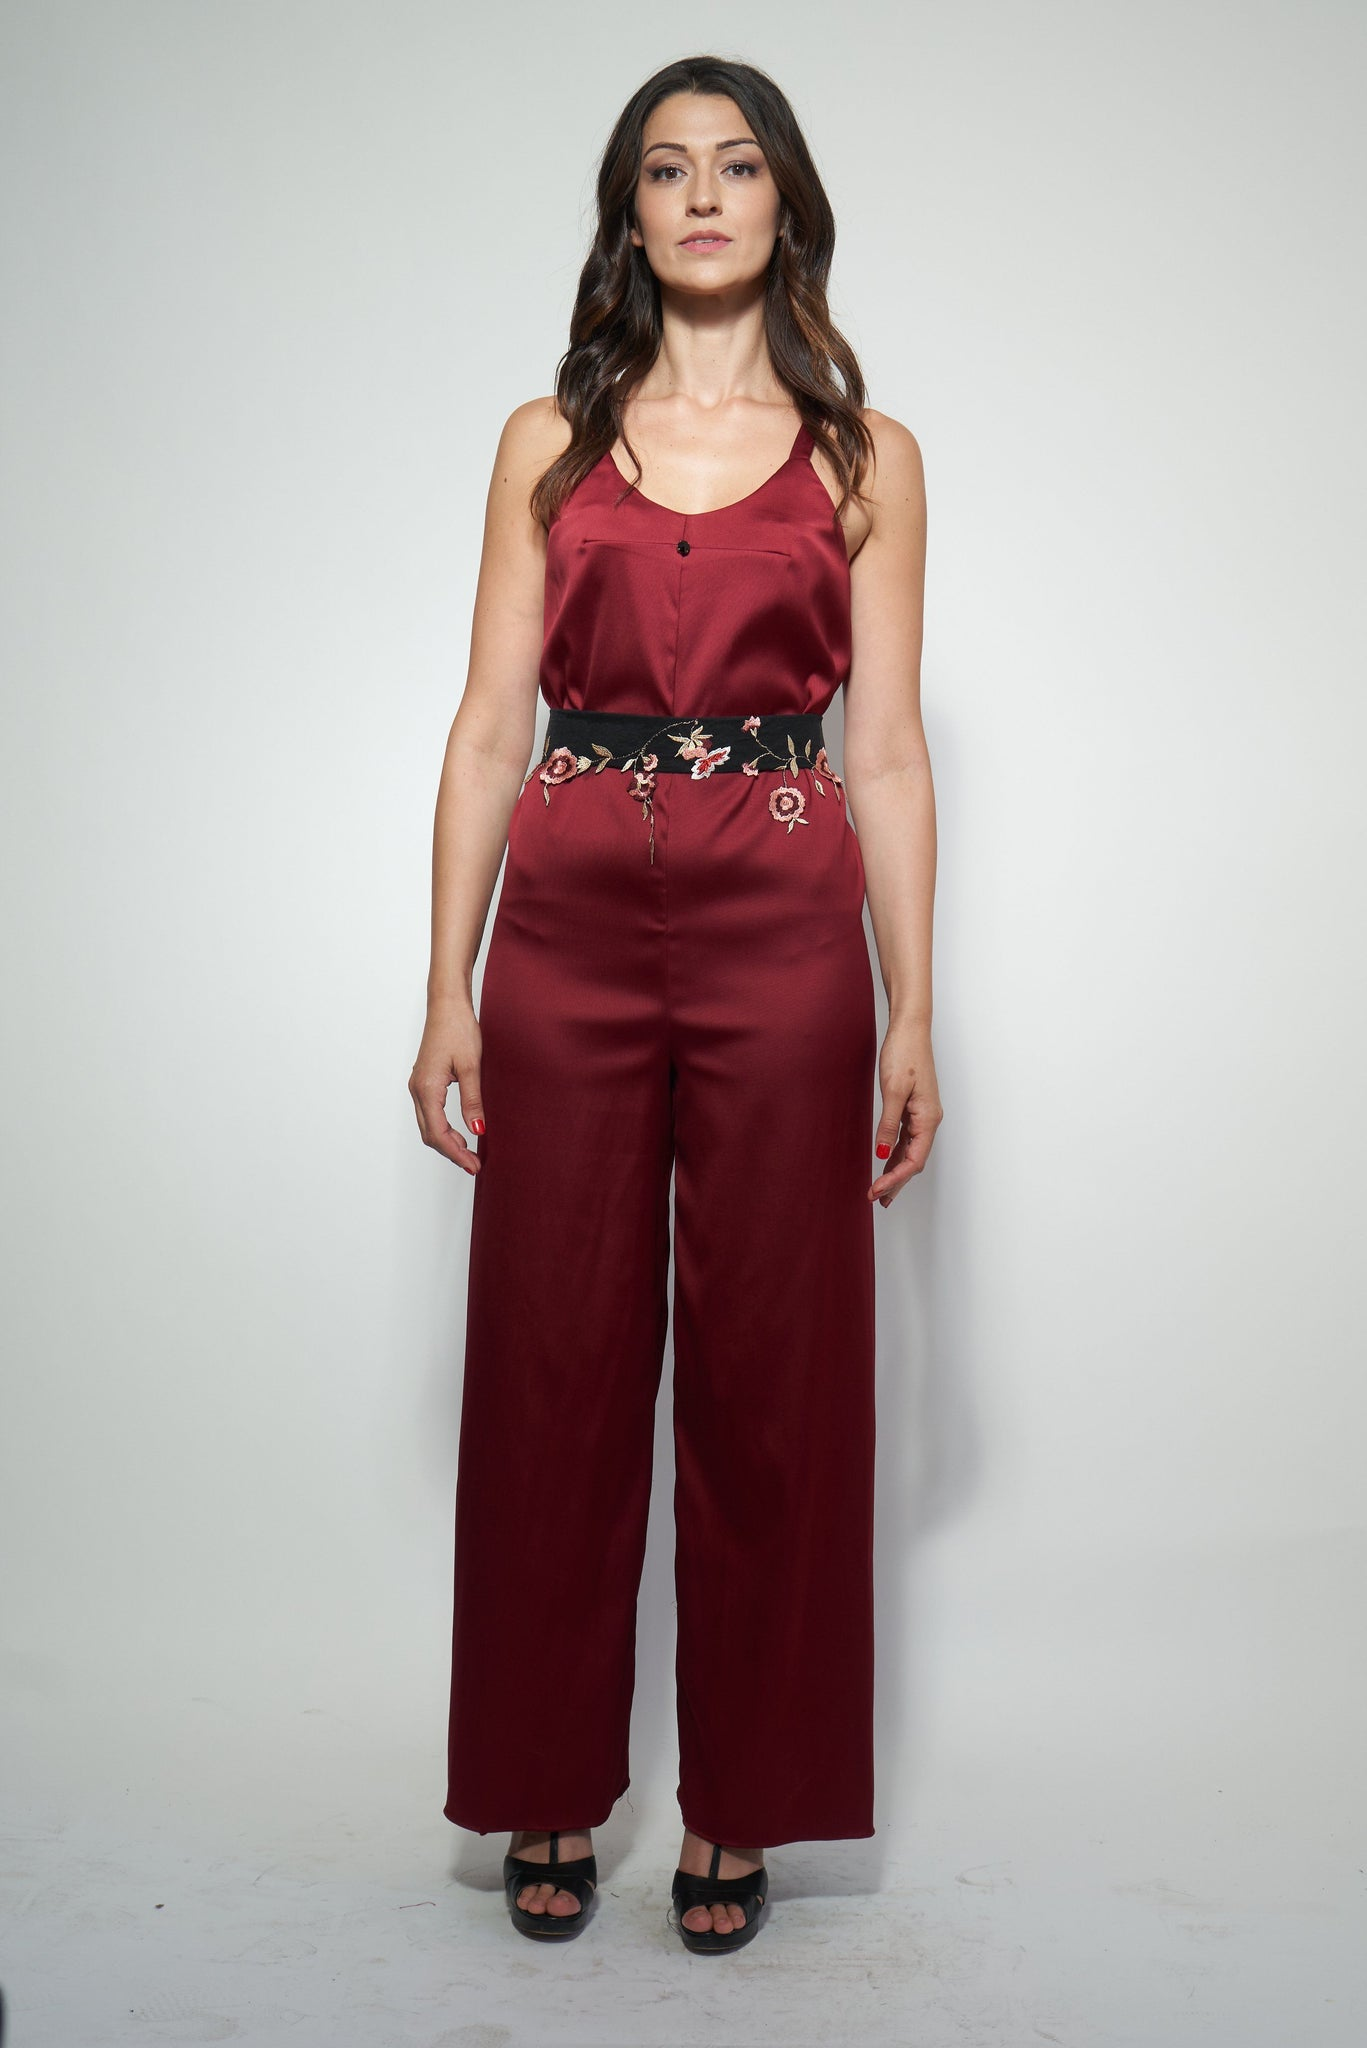 Jumpsuit - Tuta Botticelli pantaloni 322Couture S/M - sold out